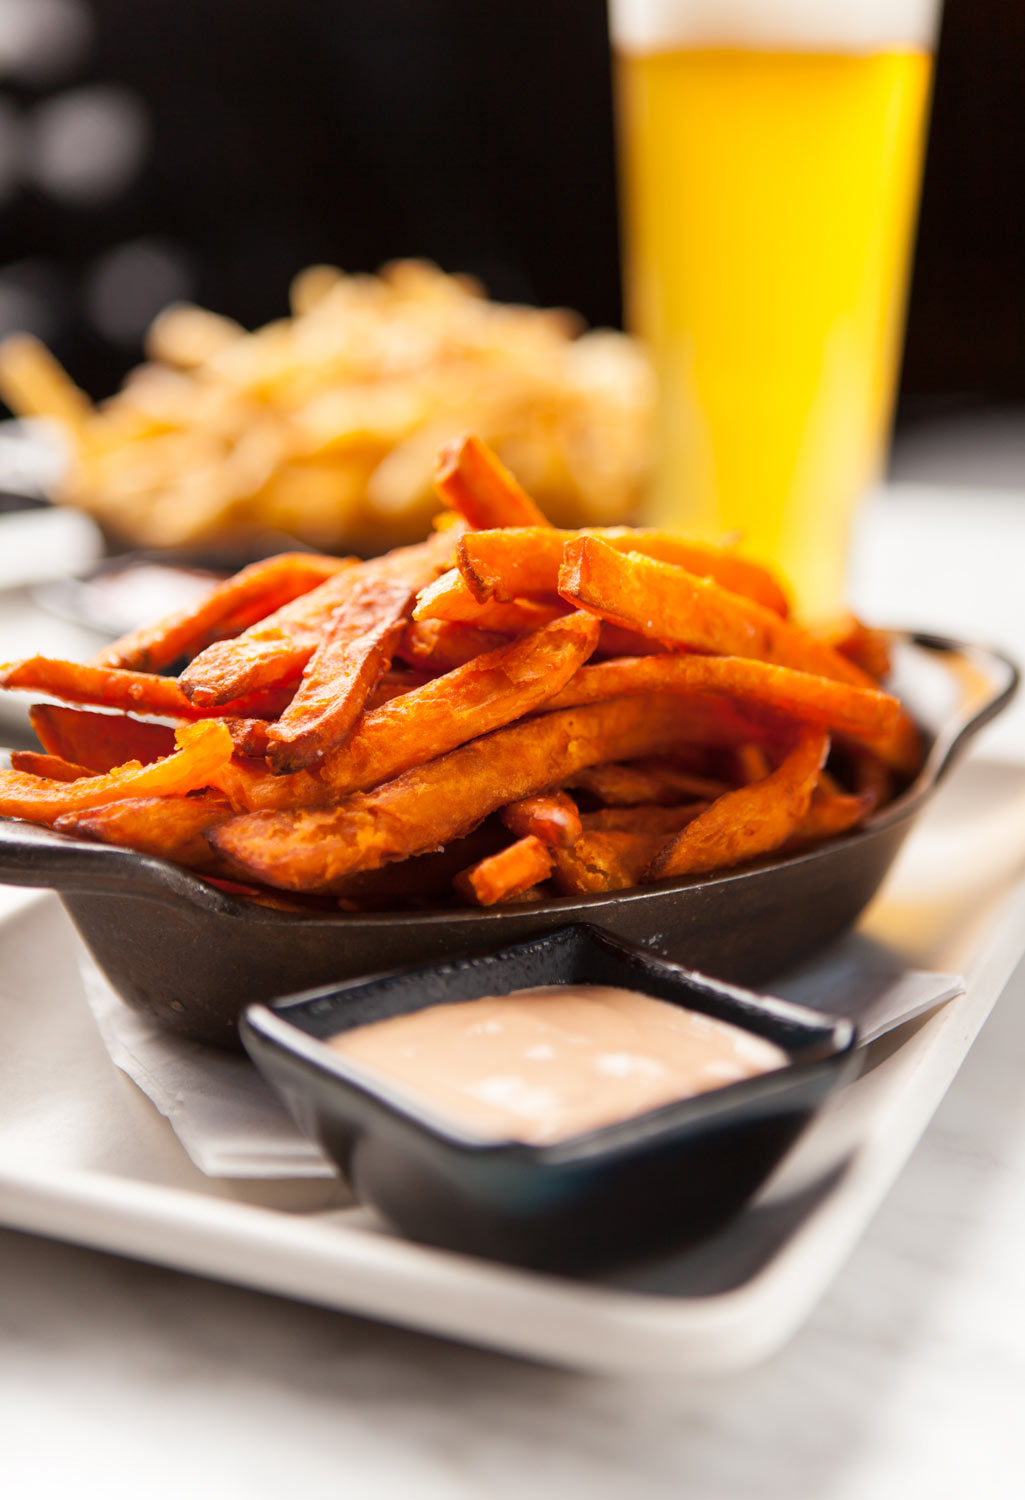 Food_Photography_french_fries_sweet_potatoe_ketchup_happy_hour_beer_specials_late_night_bar_food.jpg